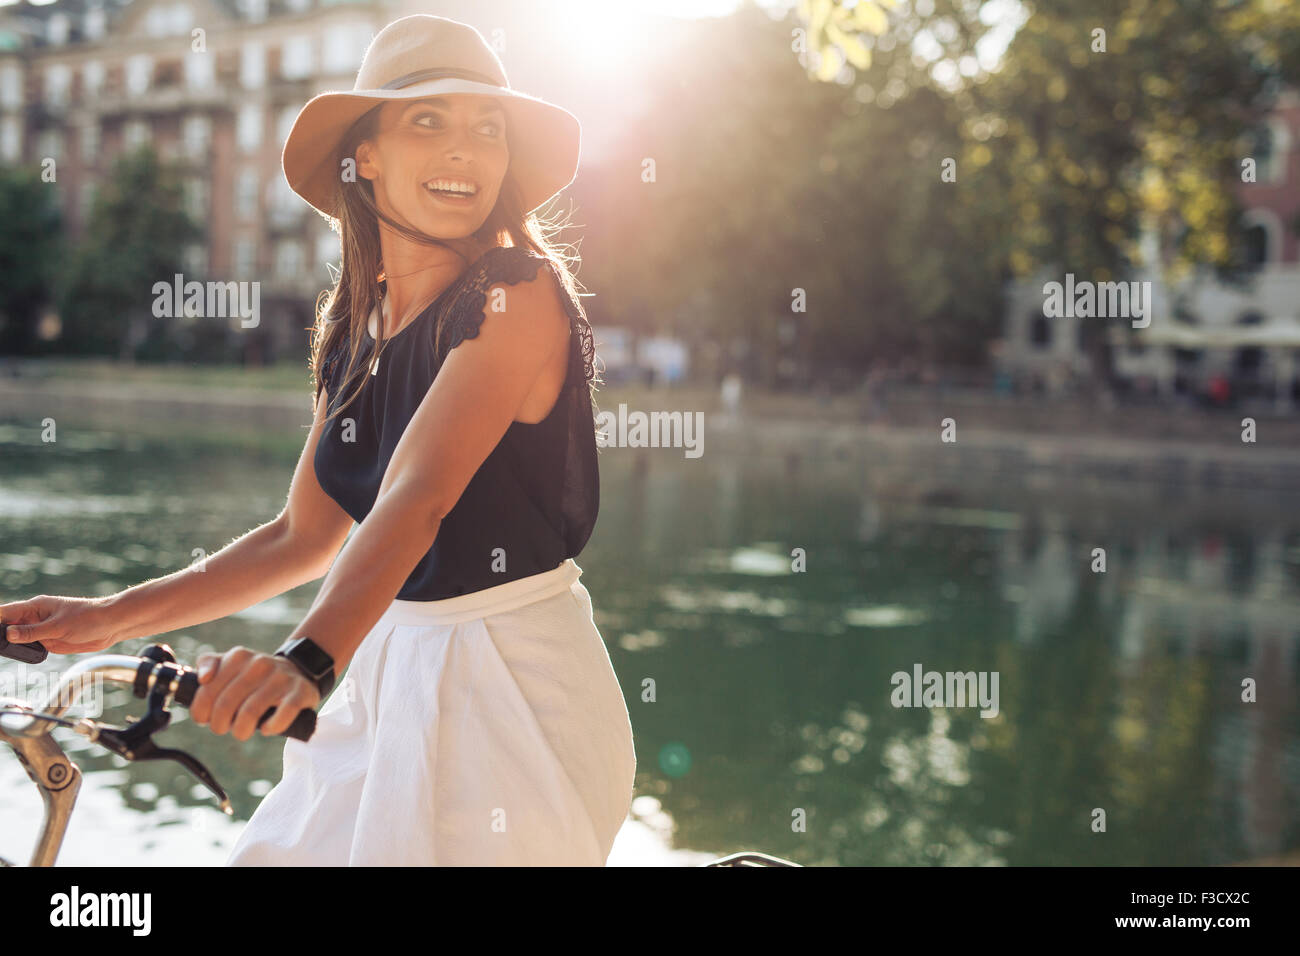 Portrait of happy young woman riding bicycle by a pond. Woman wearing a hat on a summer day looking over her shoulder. - Stock Image